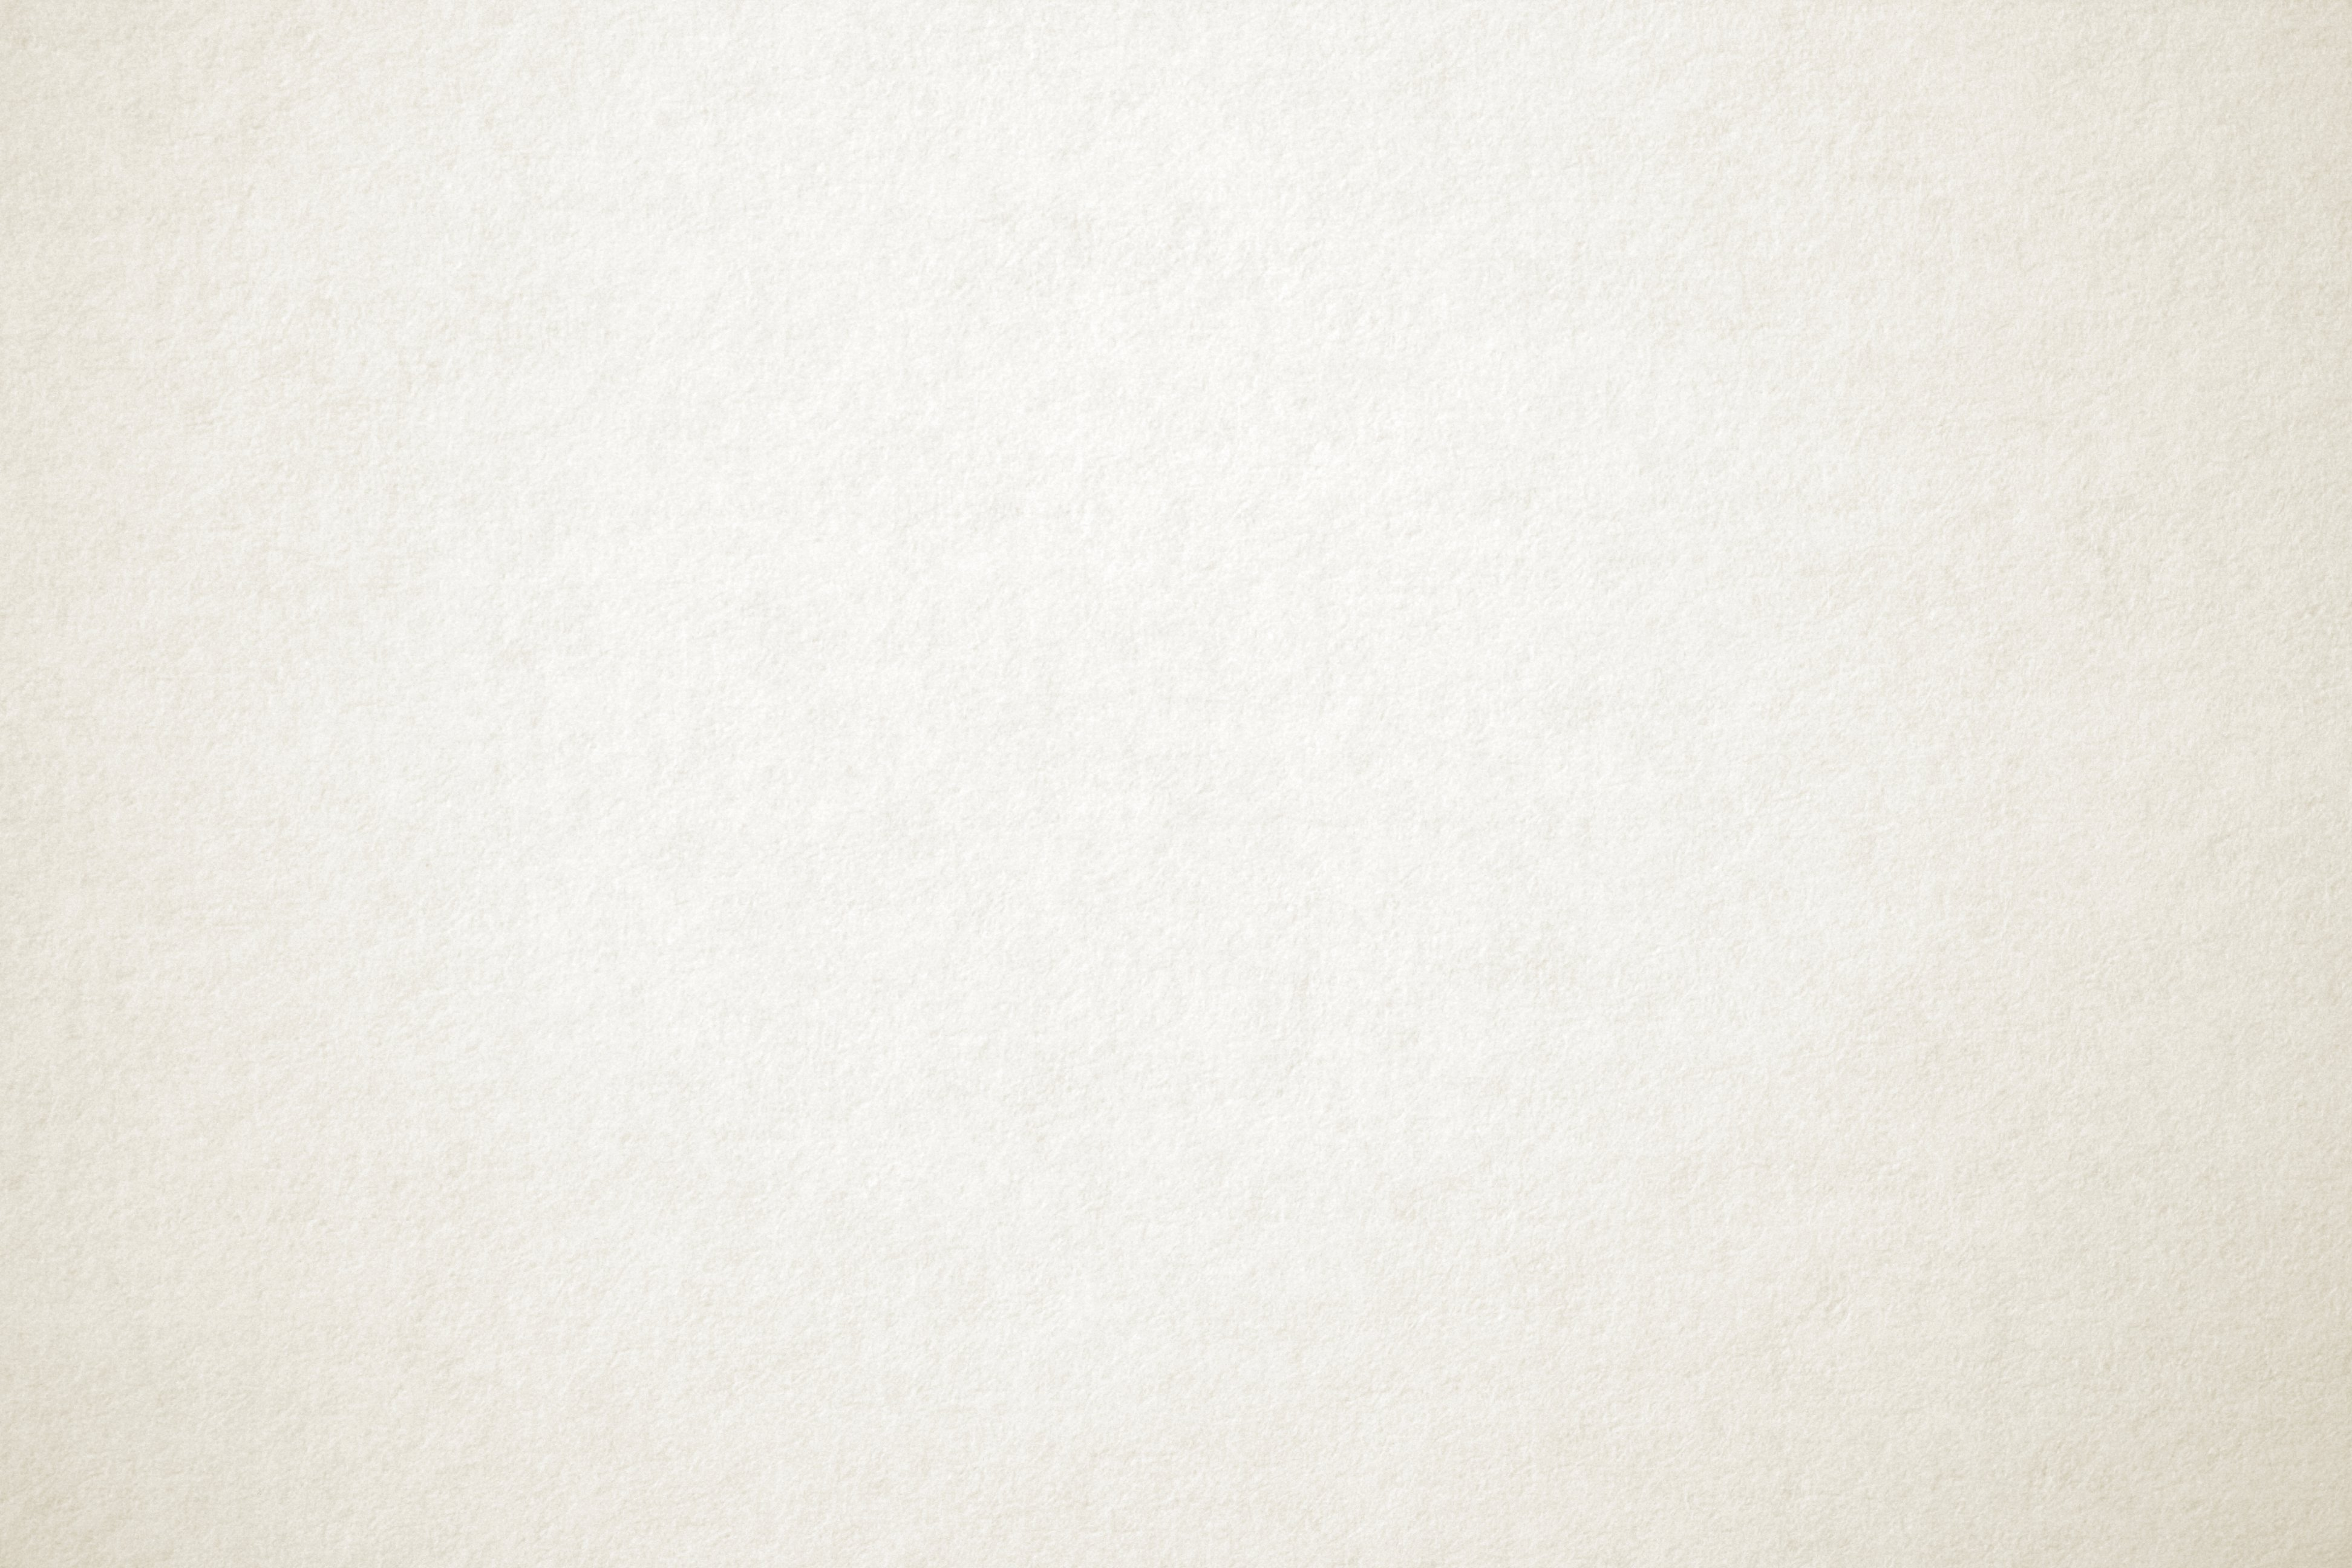 Ivory Off White Paper Texture Picture Photograph Photos 3888x2592